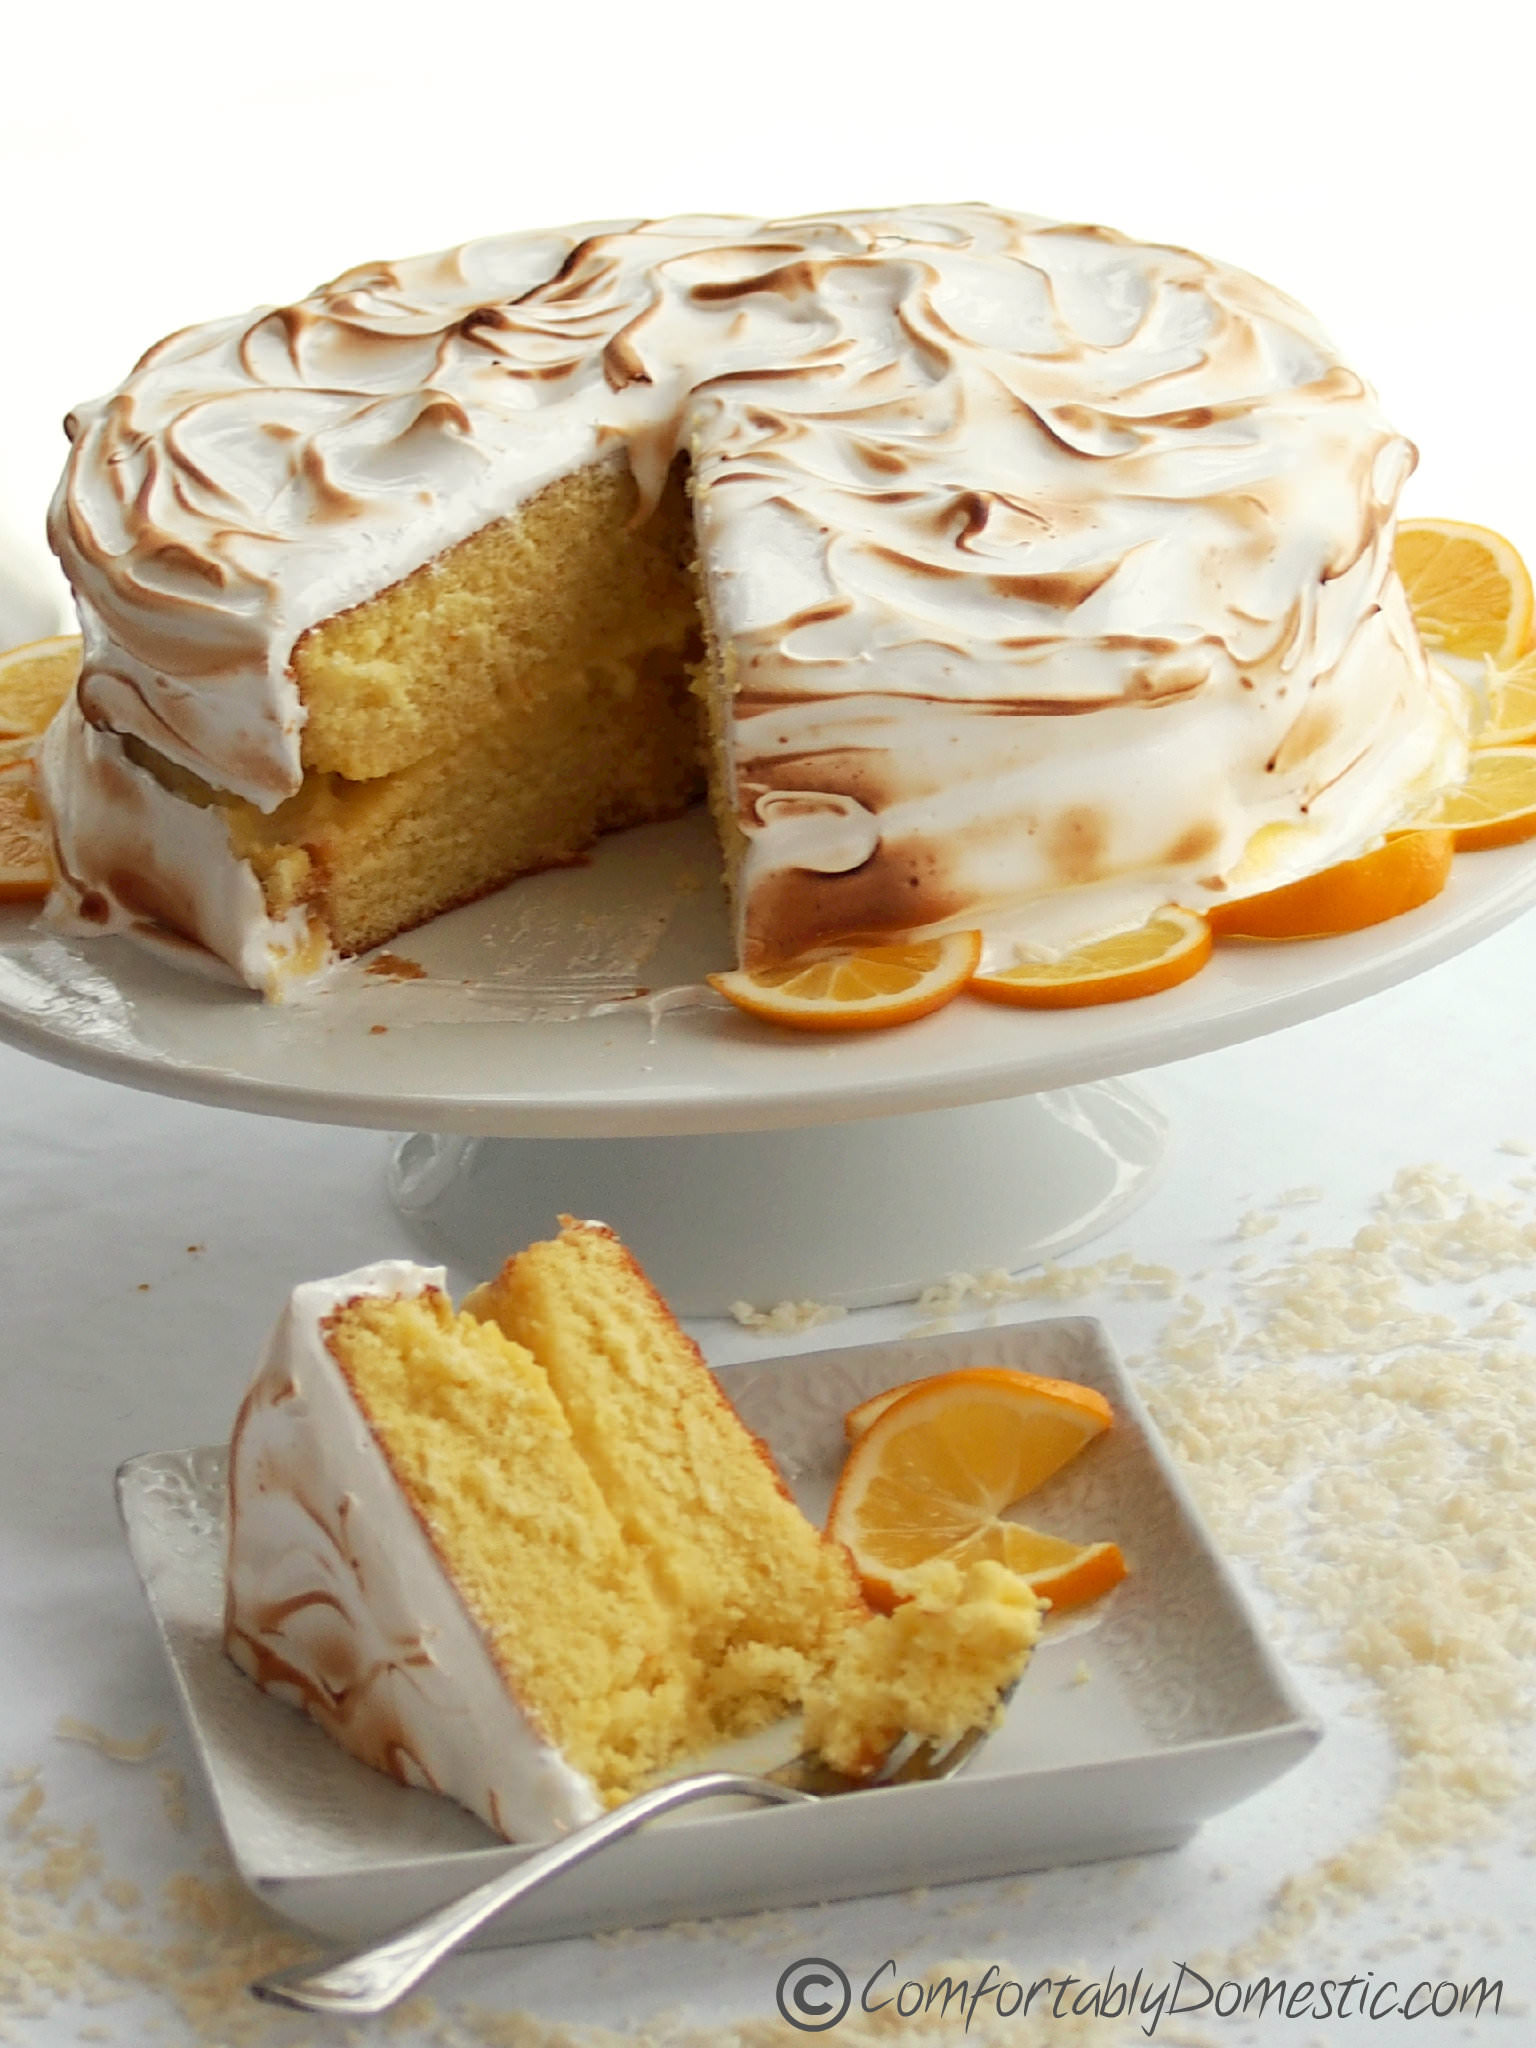 Coconut Meyer Lemon Meringue Cake - The balance of flavors and textures between moist cake, creamy lemon curd, and toasted Swiss meringue makes this Coconut Meyer Lemon Cake recipe a winner! | ComfortablyDomestic.com